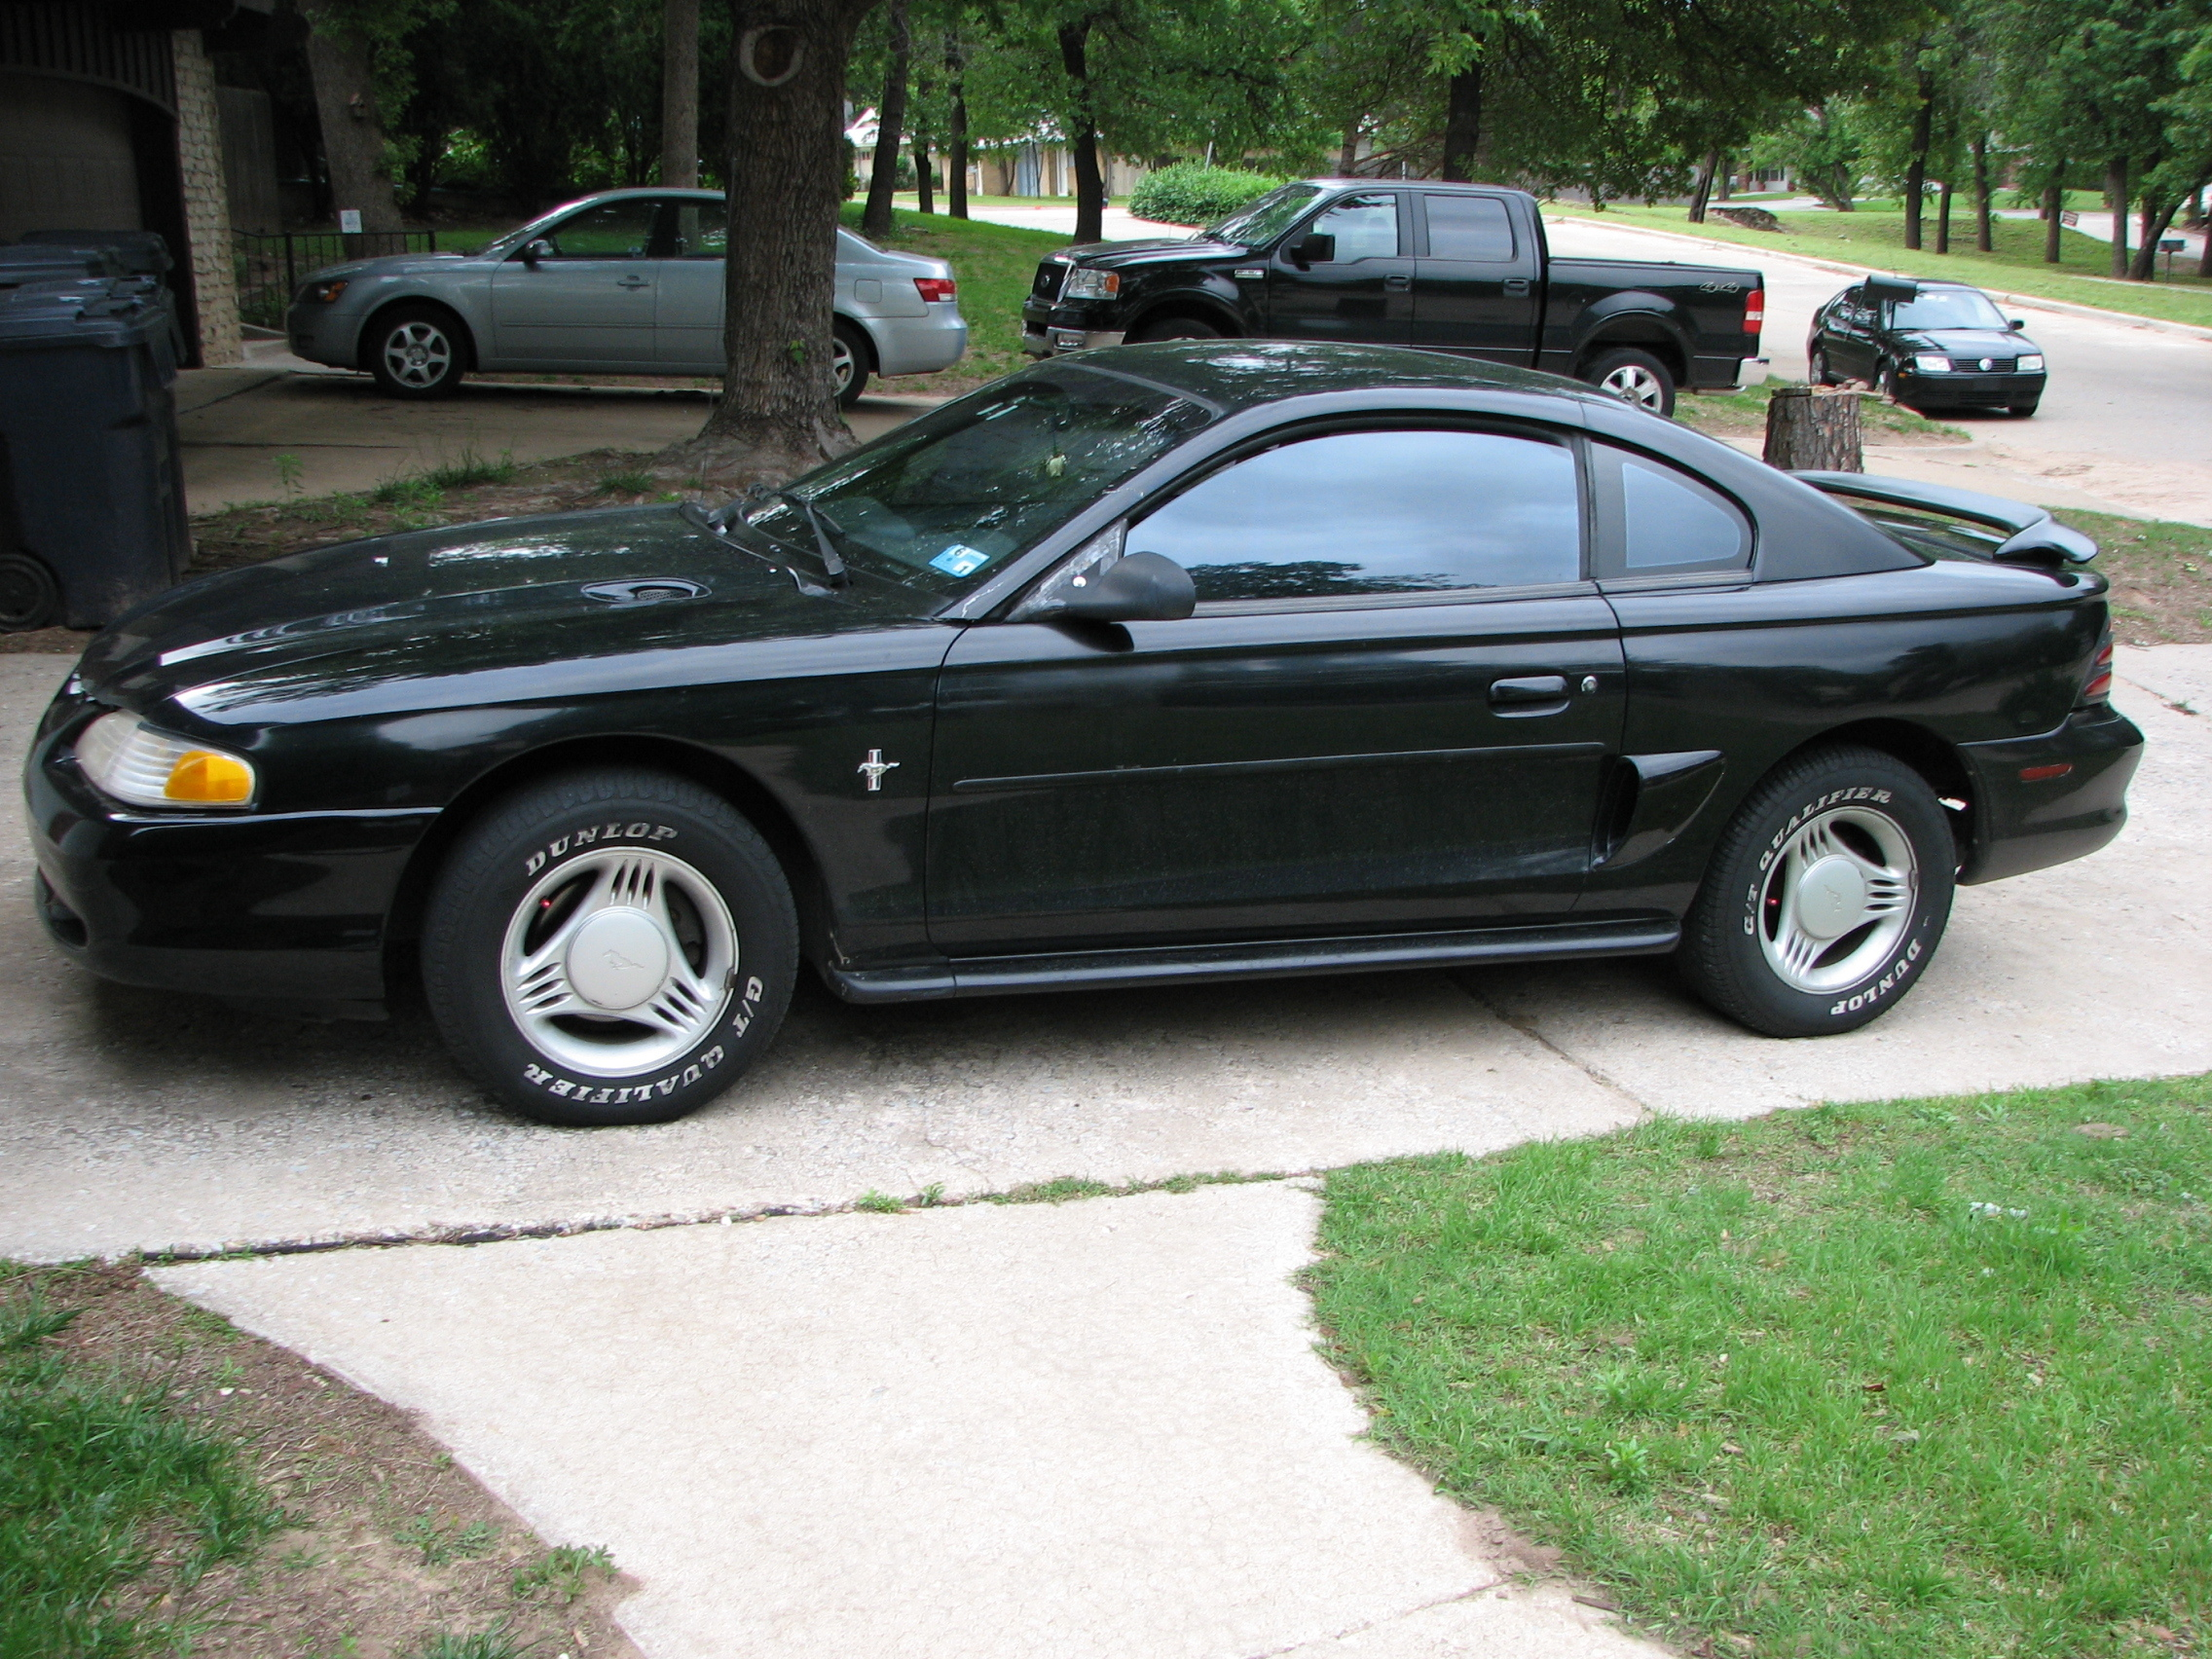 95 mustang38 1995 ford mustang specs photos modification. Black Bedroom Furniture Sets. Home Design Ideas